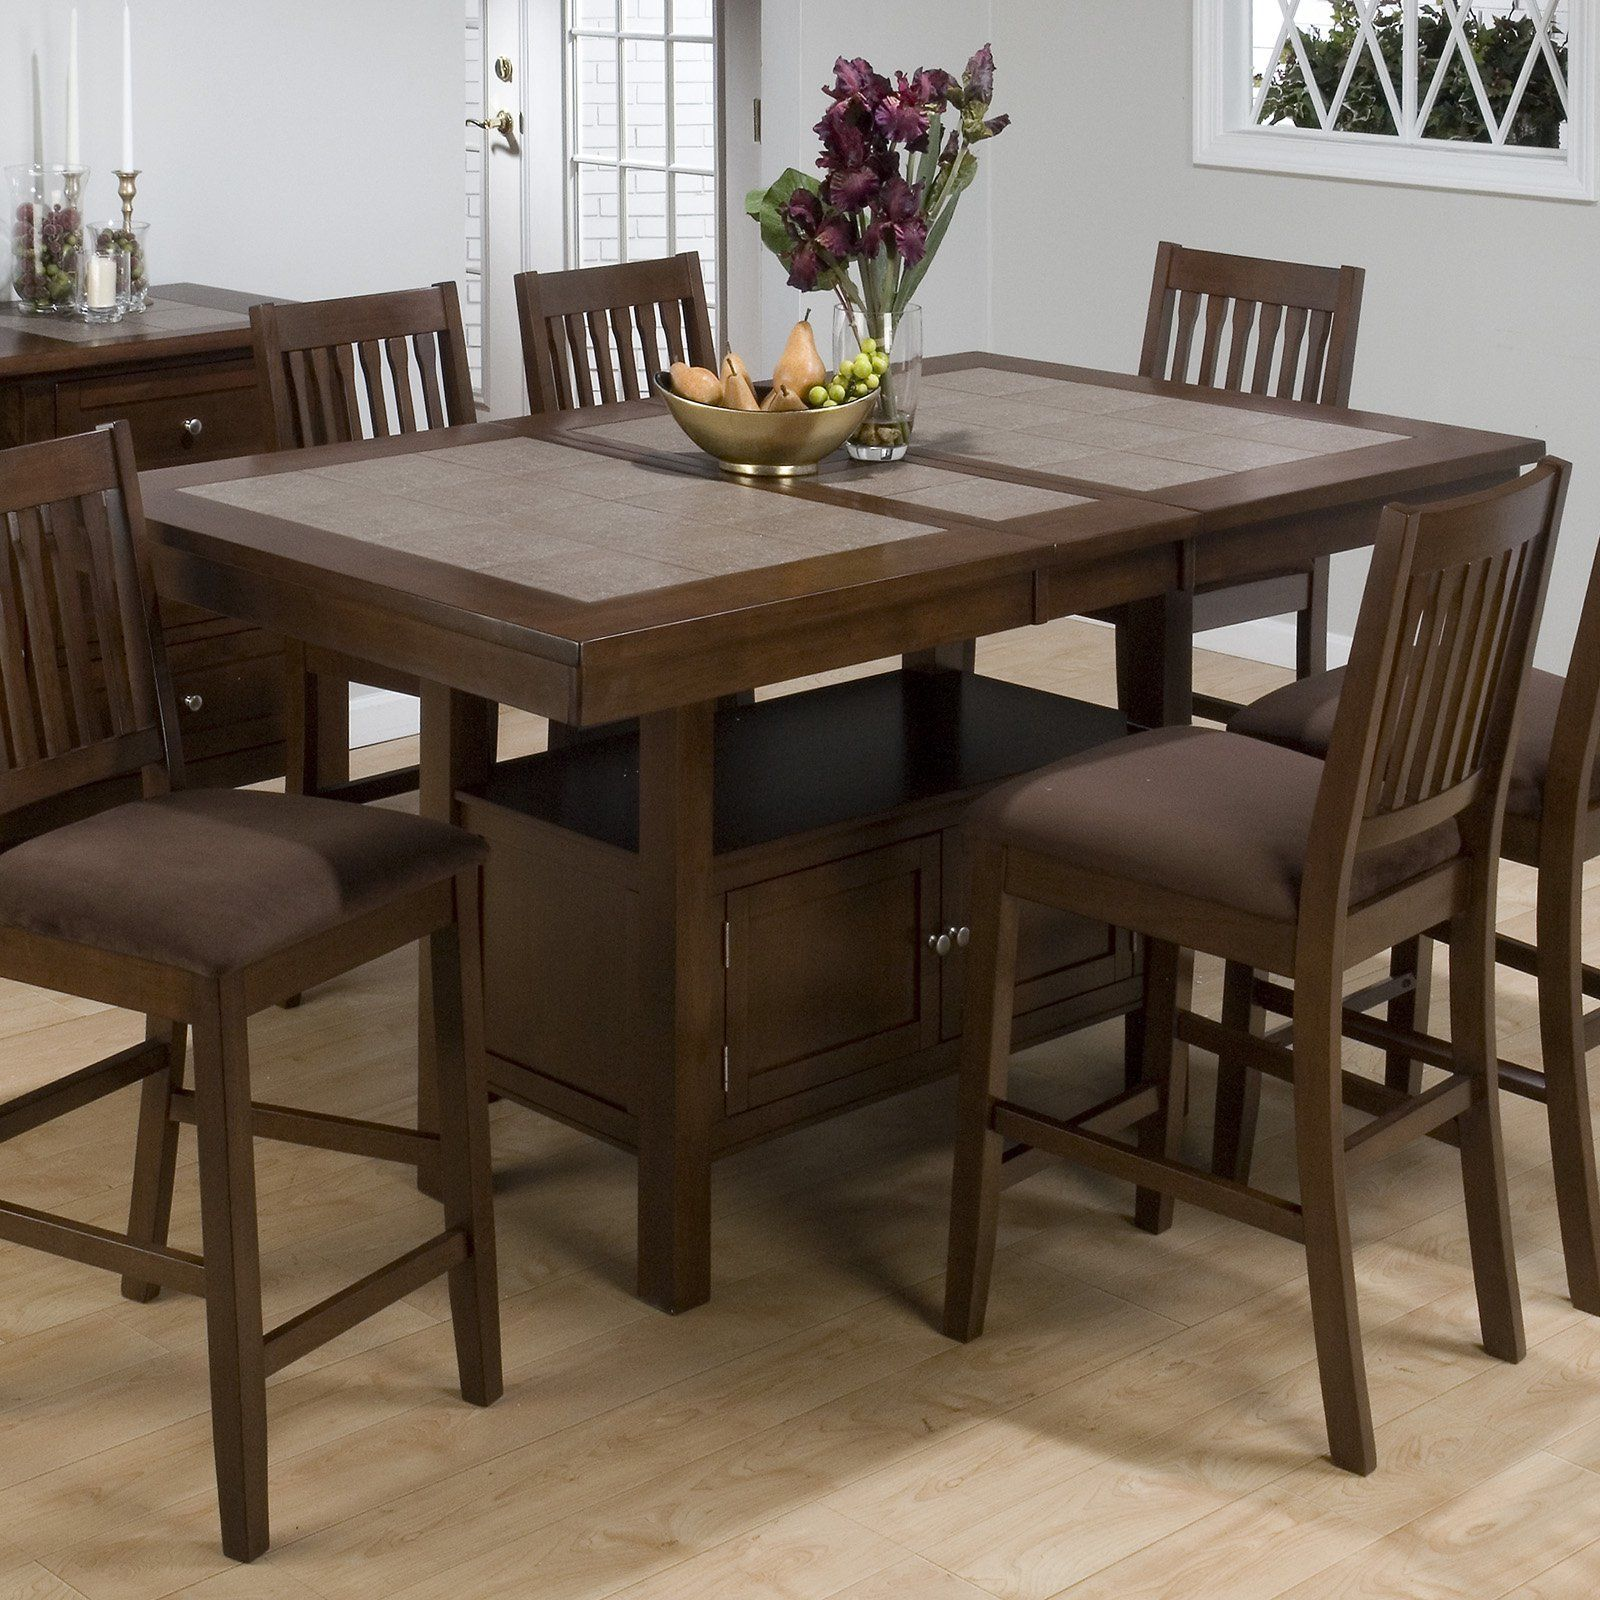 Jofran Trumbull Tile Top Counter Height Storage Dining Table